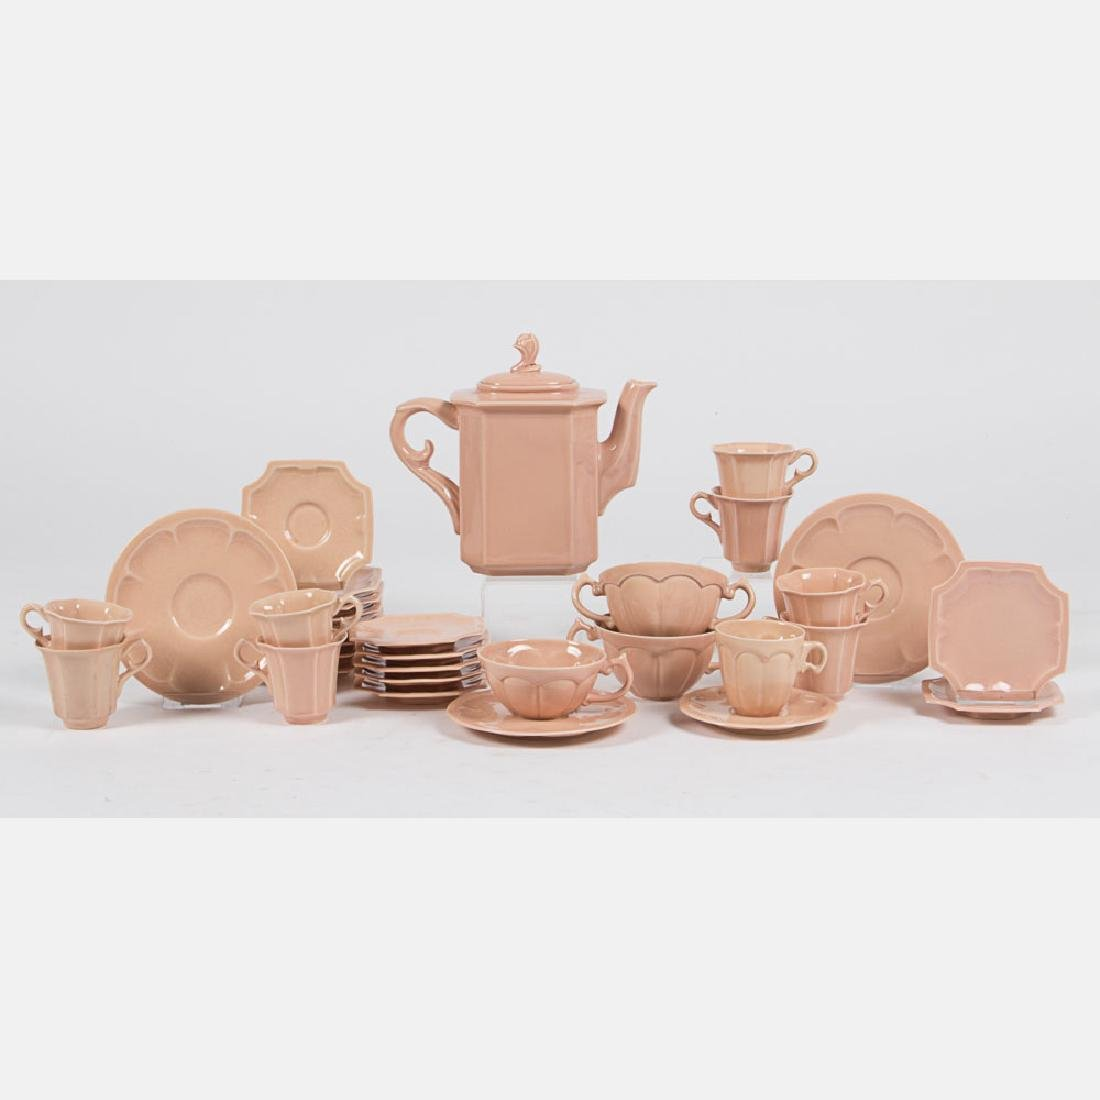 A Cowan Pottery Partial Tea and Coffee Service in the